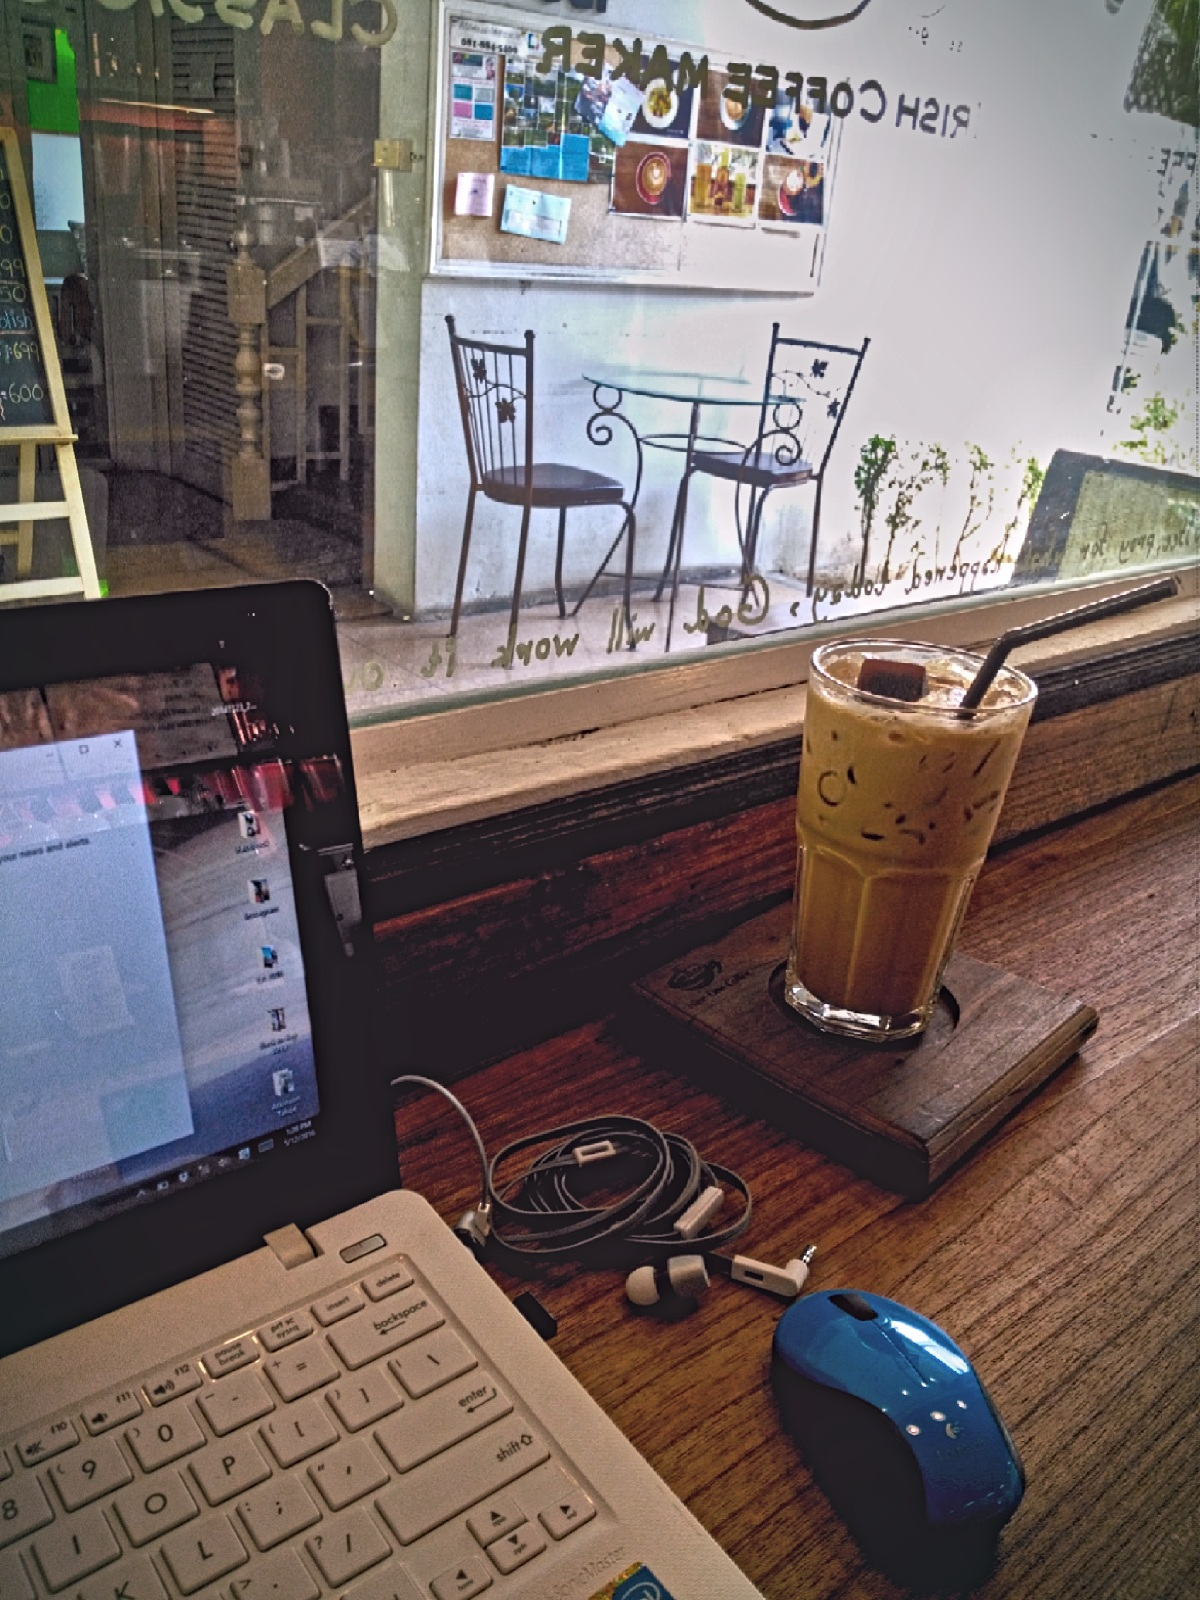 Chiang Mai versus Bali  - working on the laptop in a cafe in Chiang Mai, Thailand